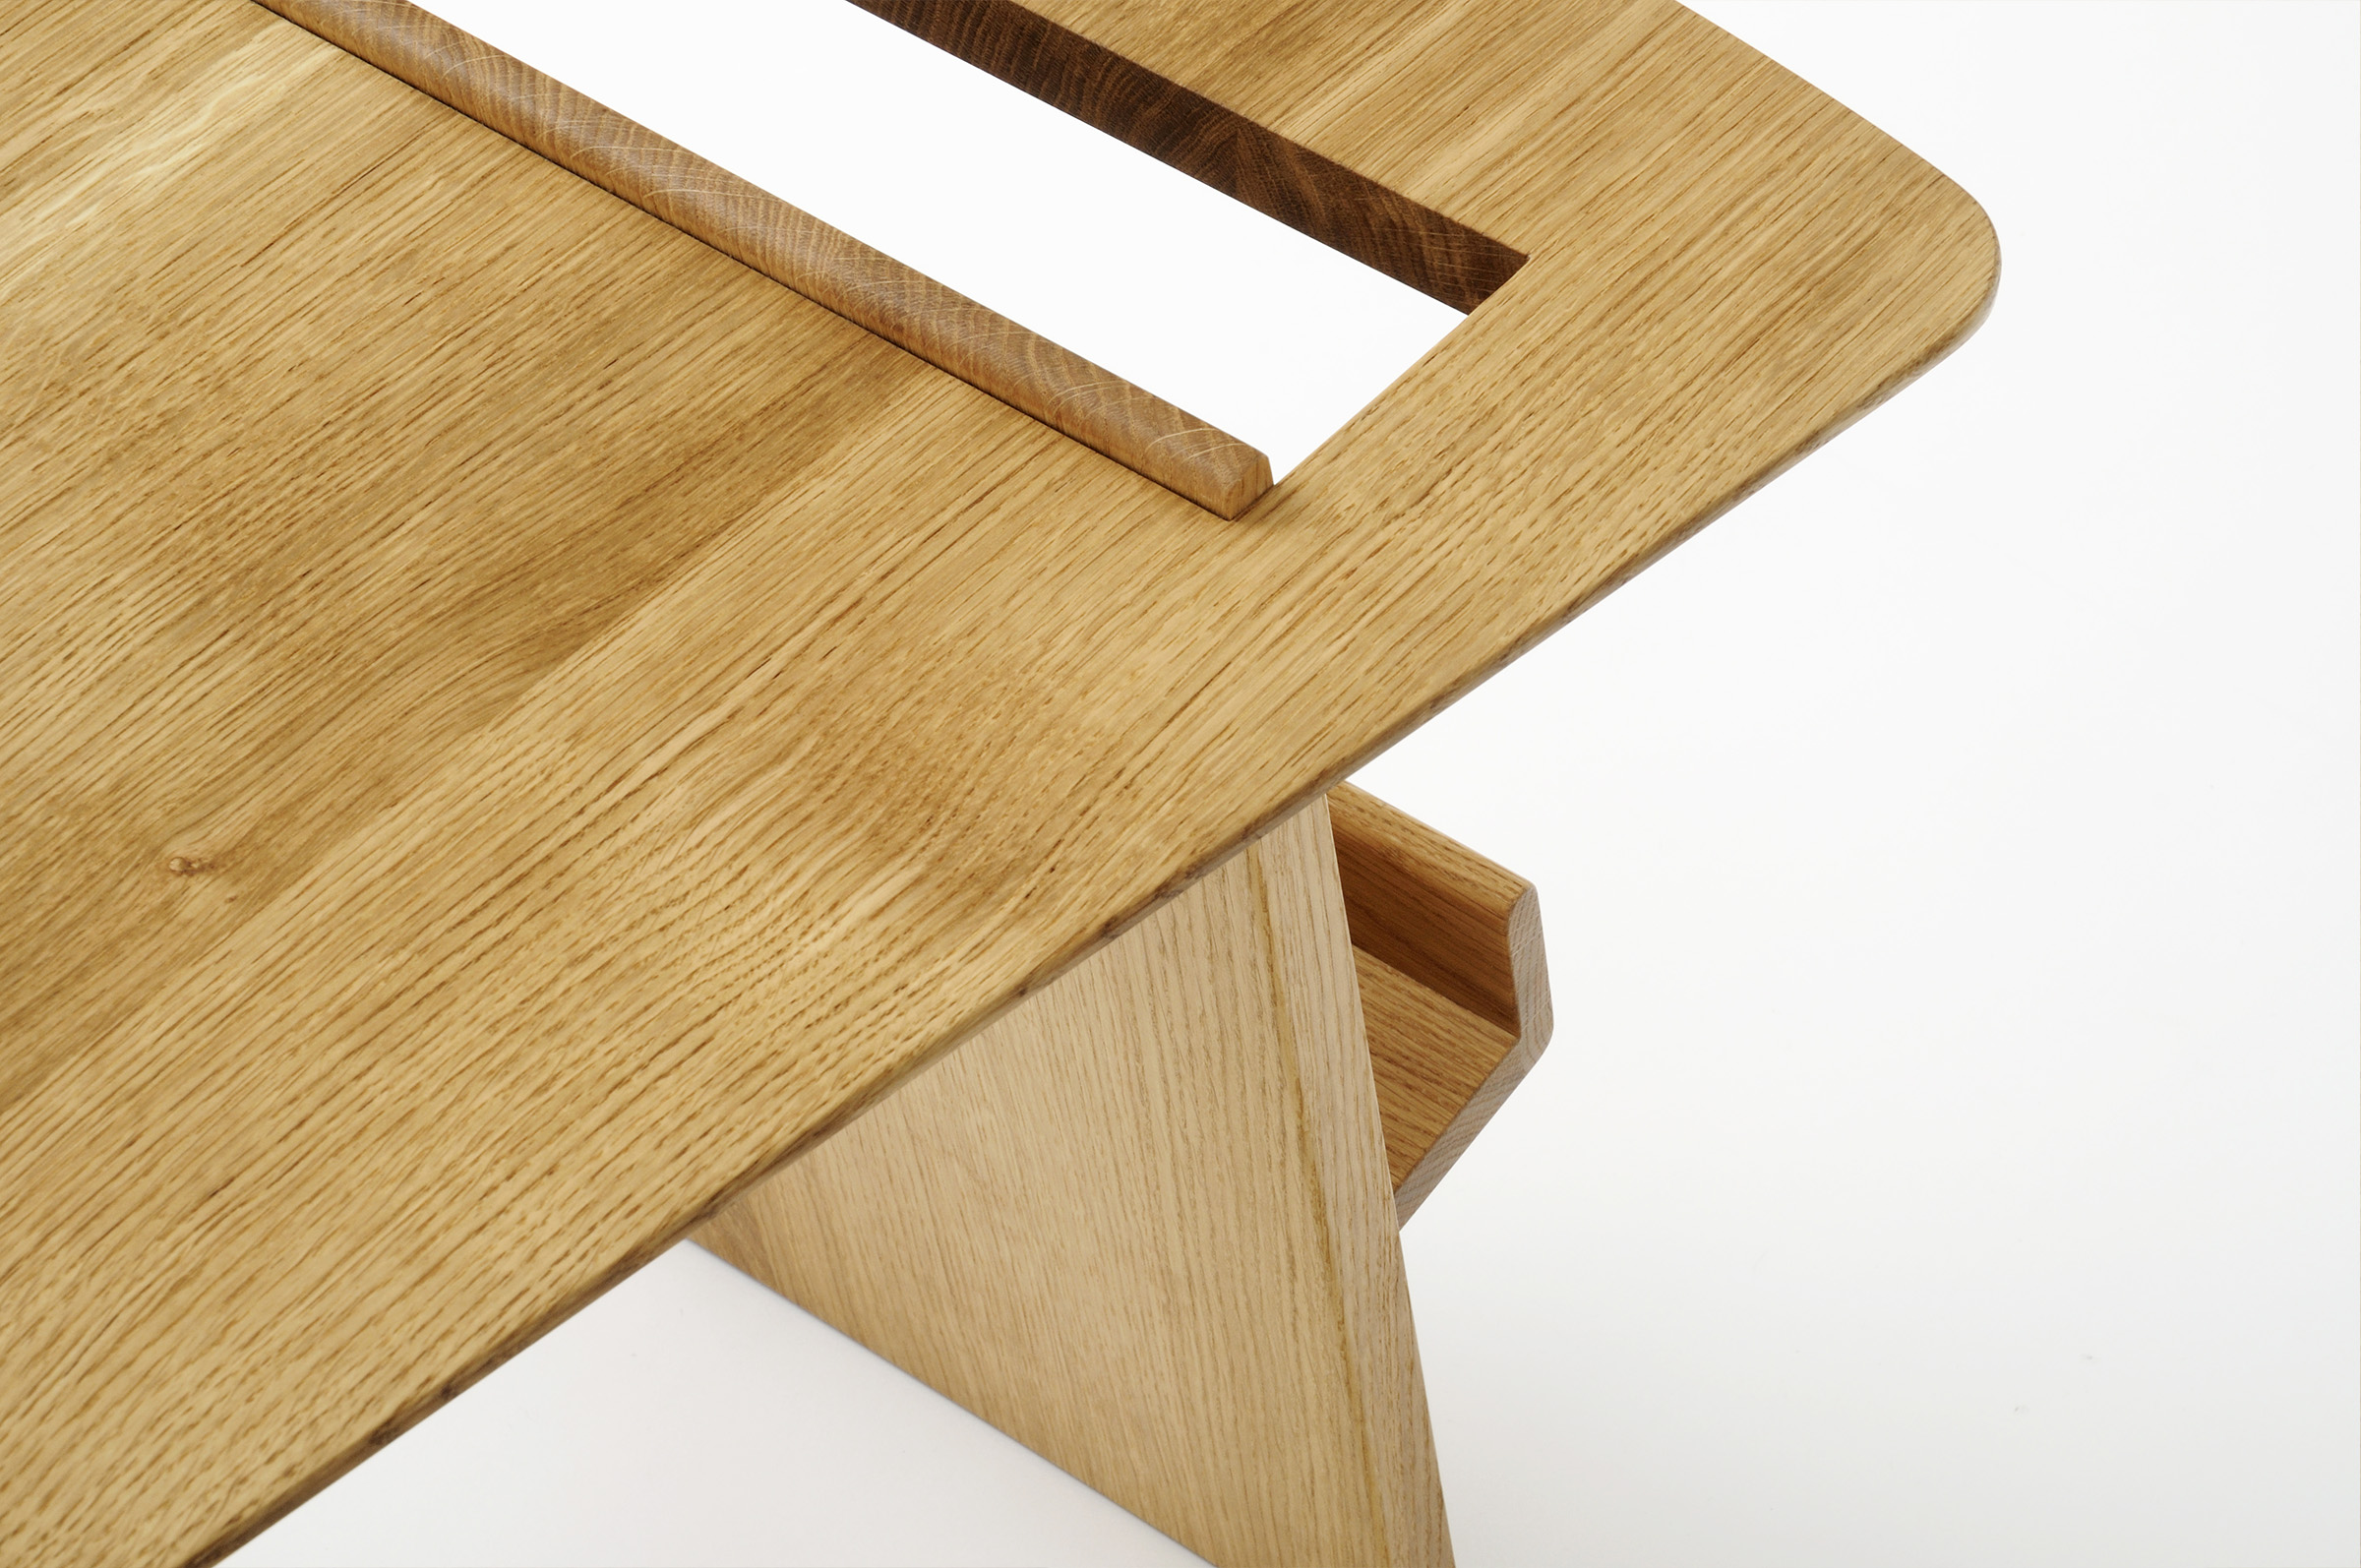 Jens Risom Furniture